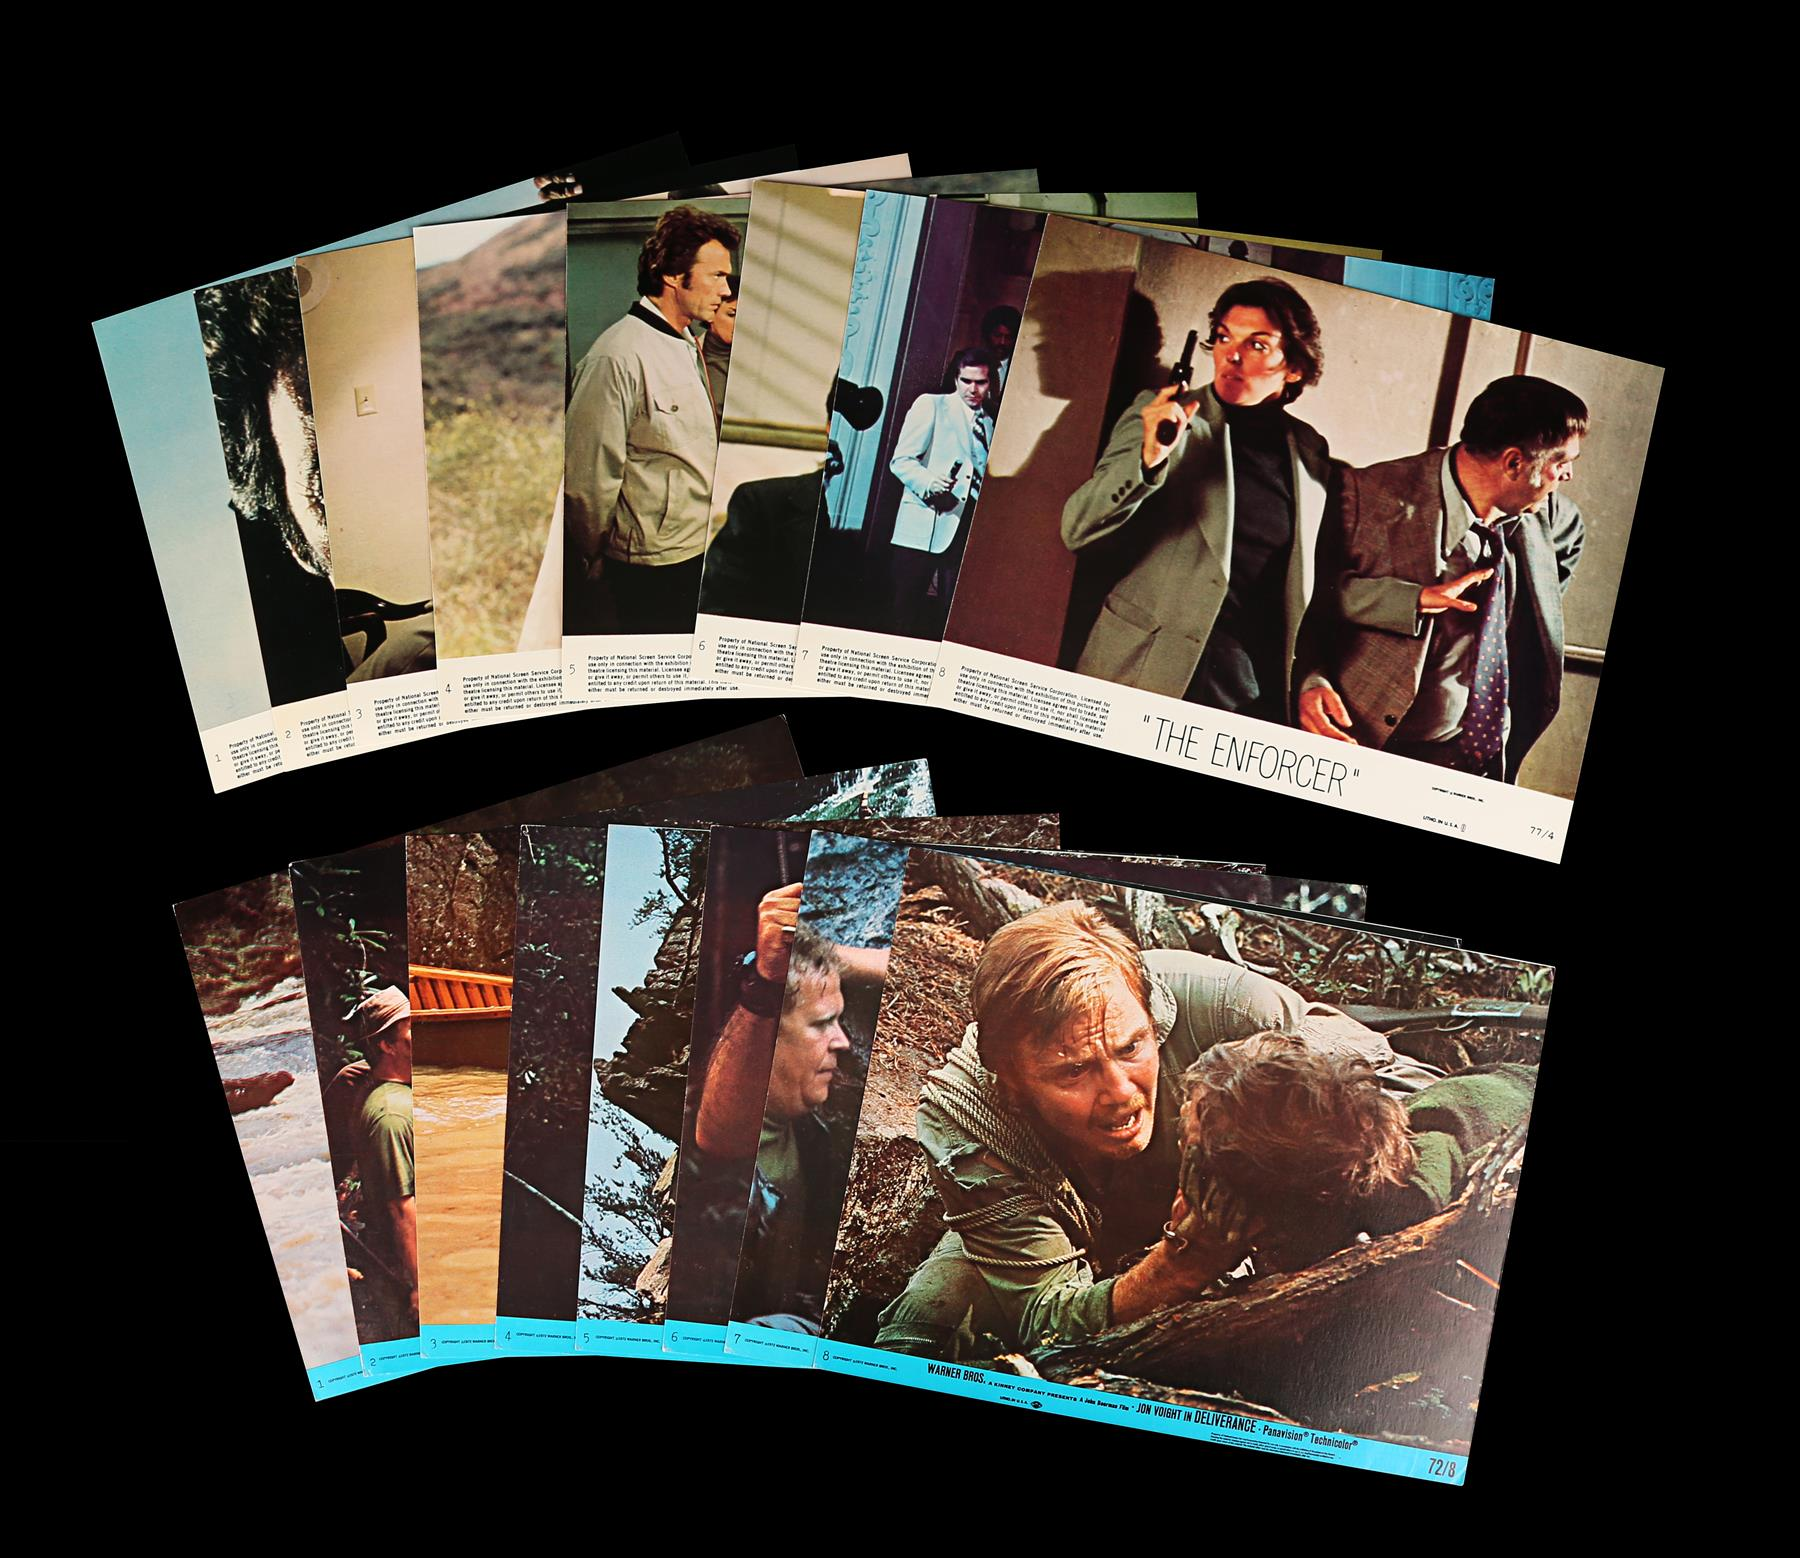 DELIVERANCE (1972), THE ENFORCER (1977) - Two Sets of US Front of House Lobby Cards, 1972, 1977